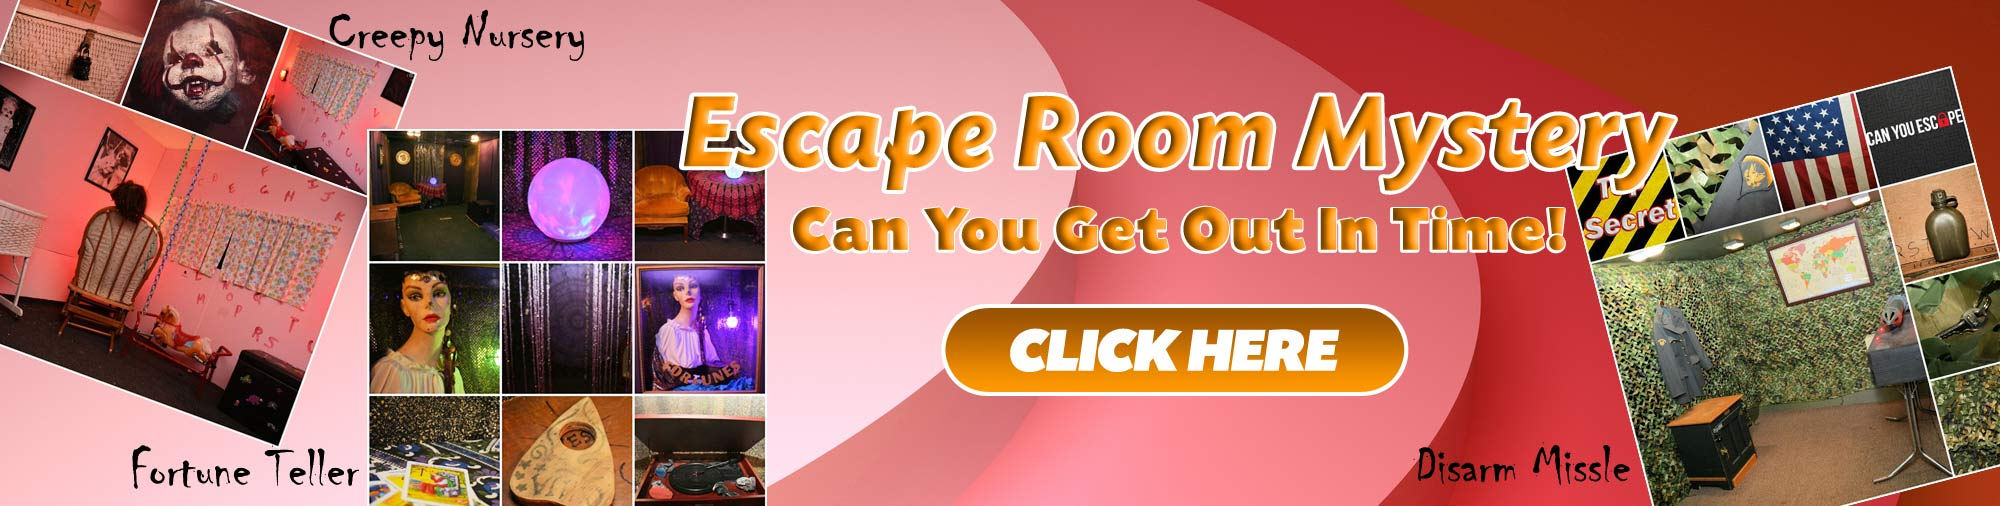 Escape Room Rental